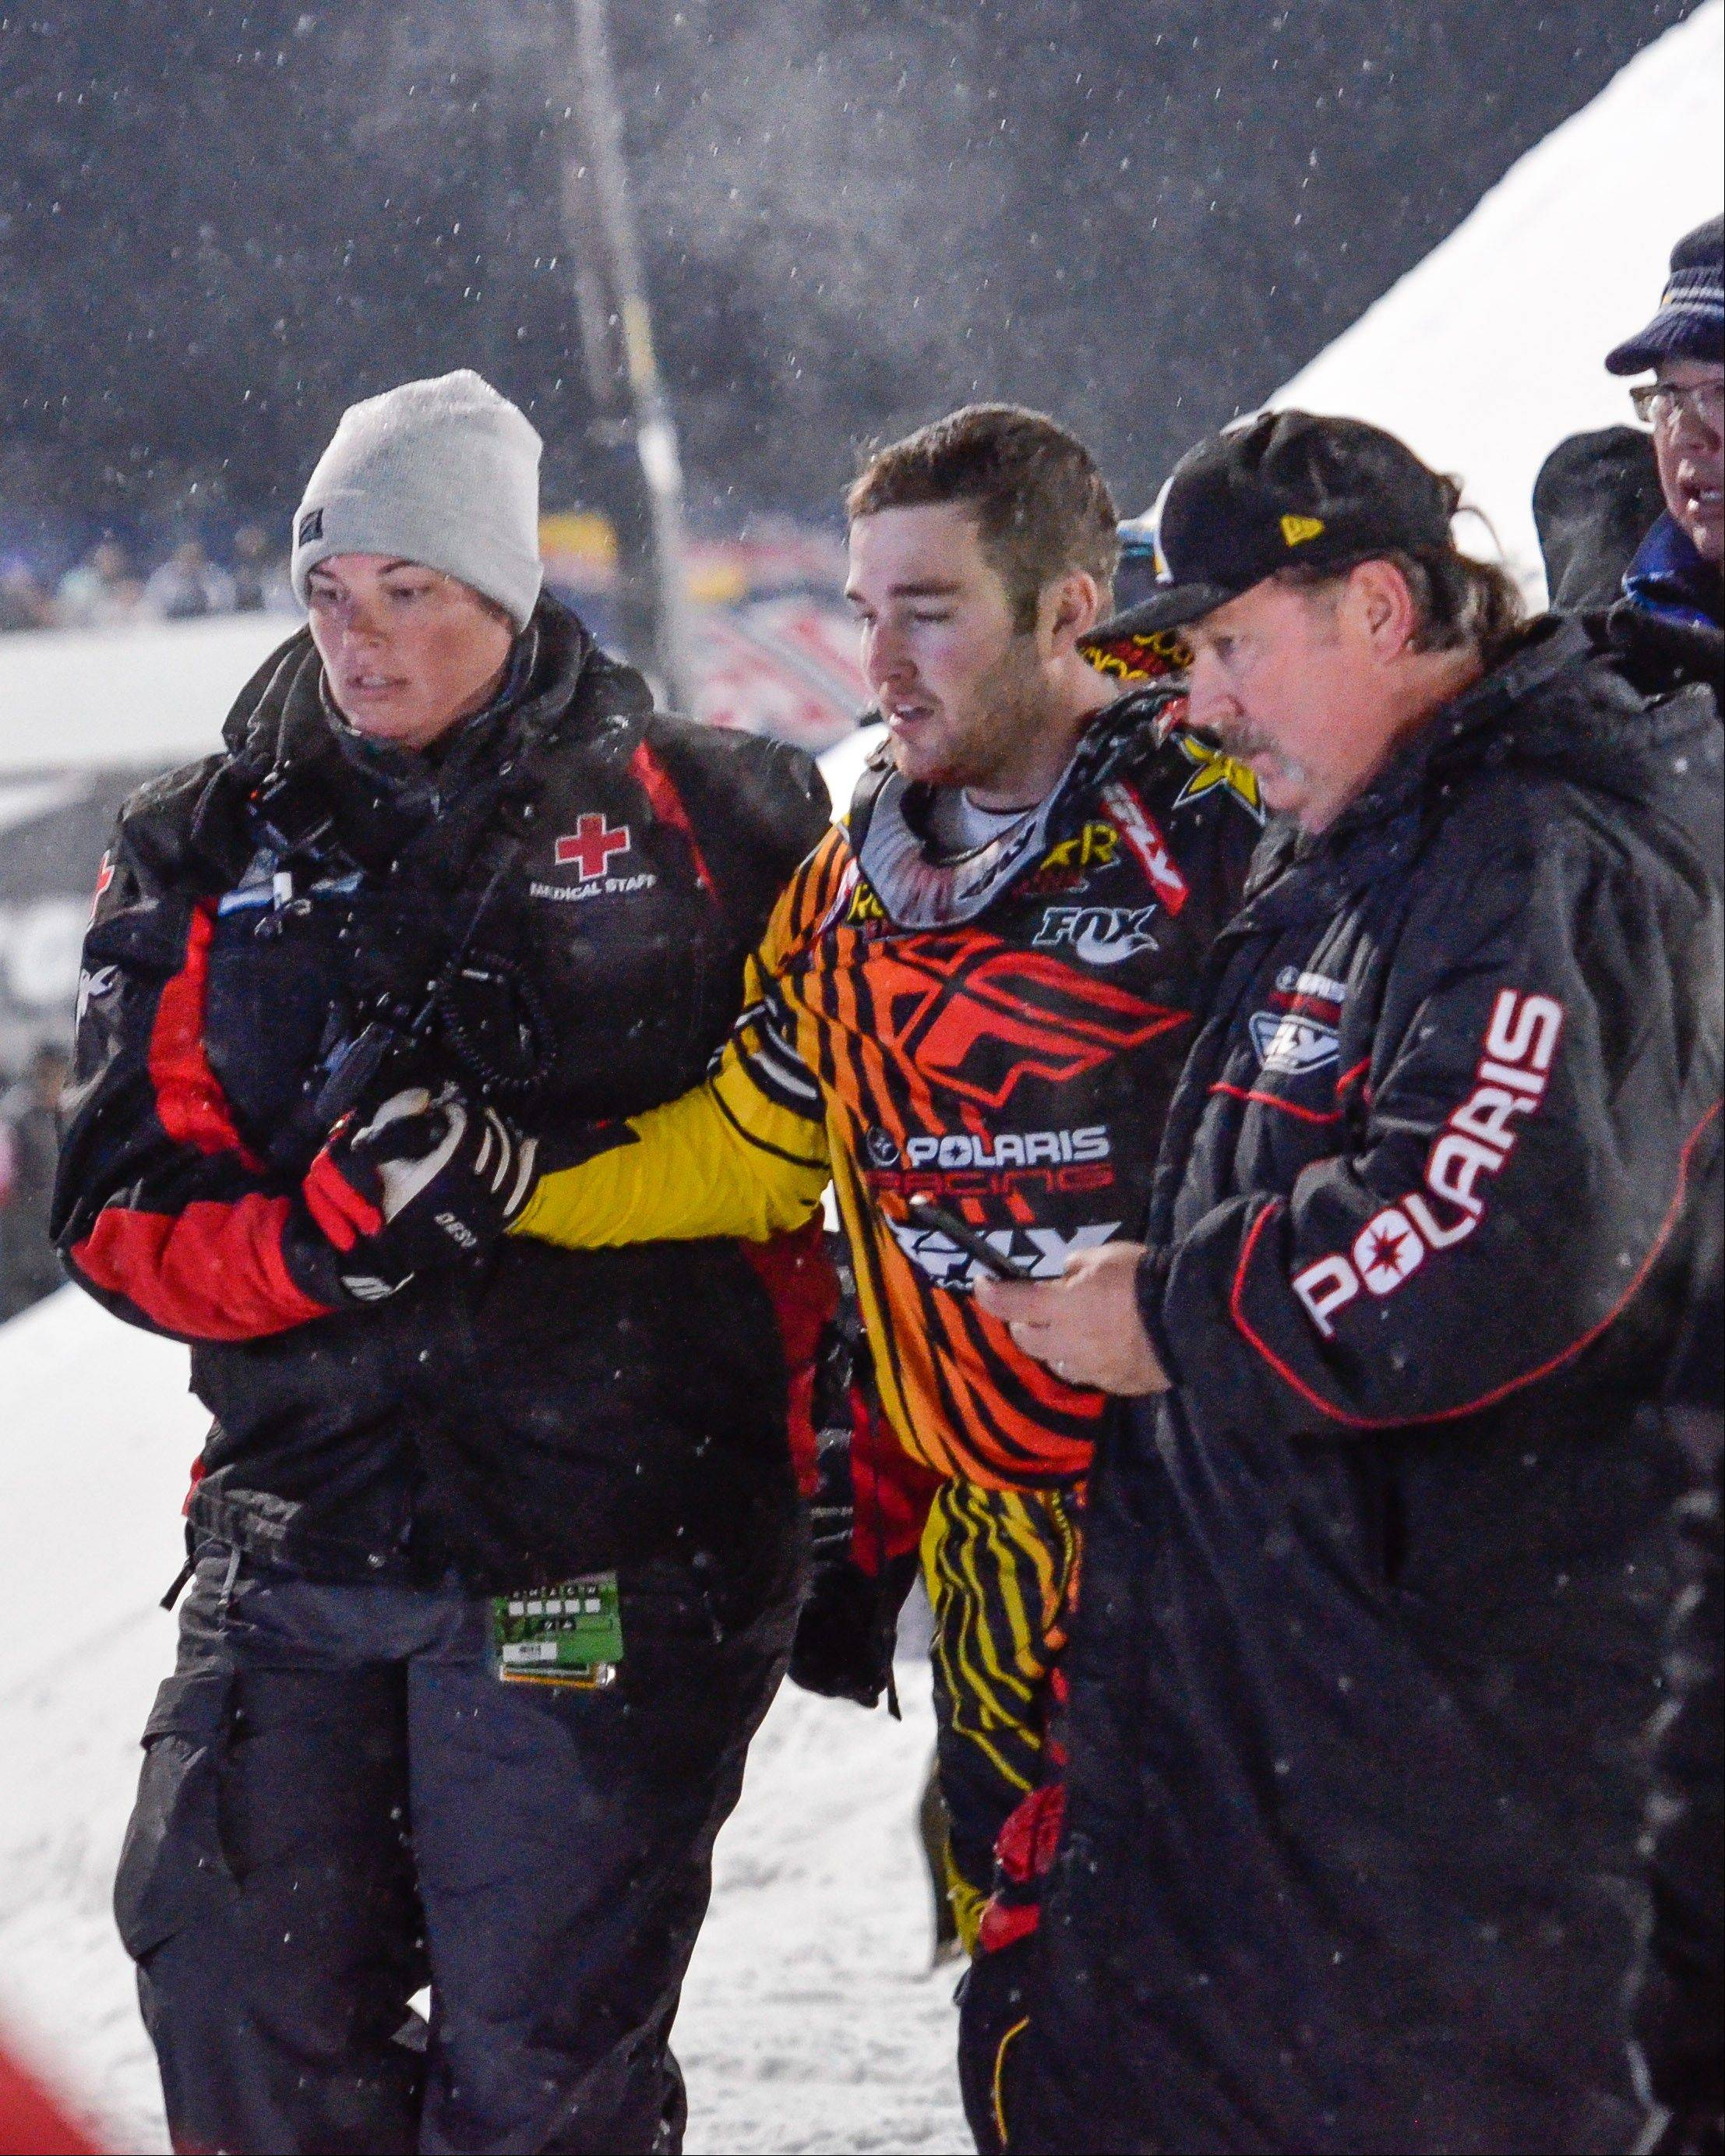 In this photo taken Jan. 24, 2013, Caleb Moore, center, is helped off the snow following his crash during the ESPN Winter X Games snowmobile freestyle competition in Aspen, Colo. Moore died on Thursday, Jan. 31, 2013, after suffering complications from injuries suffered during the crash. He was 25. AP Photo/Aspen Daily News, Chris Council)